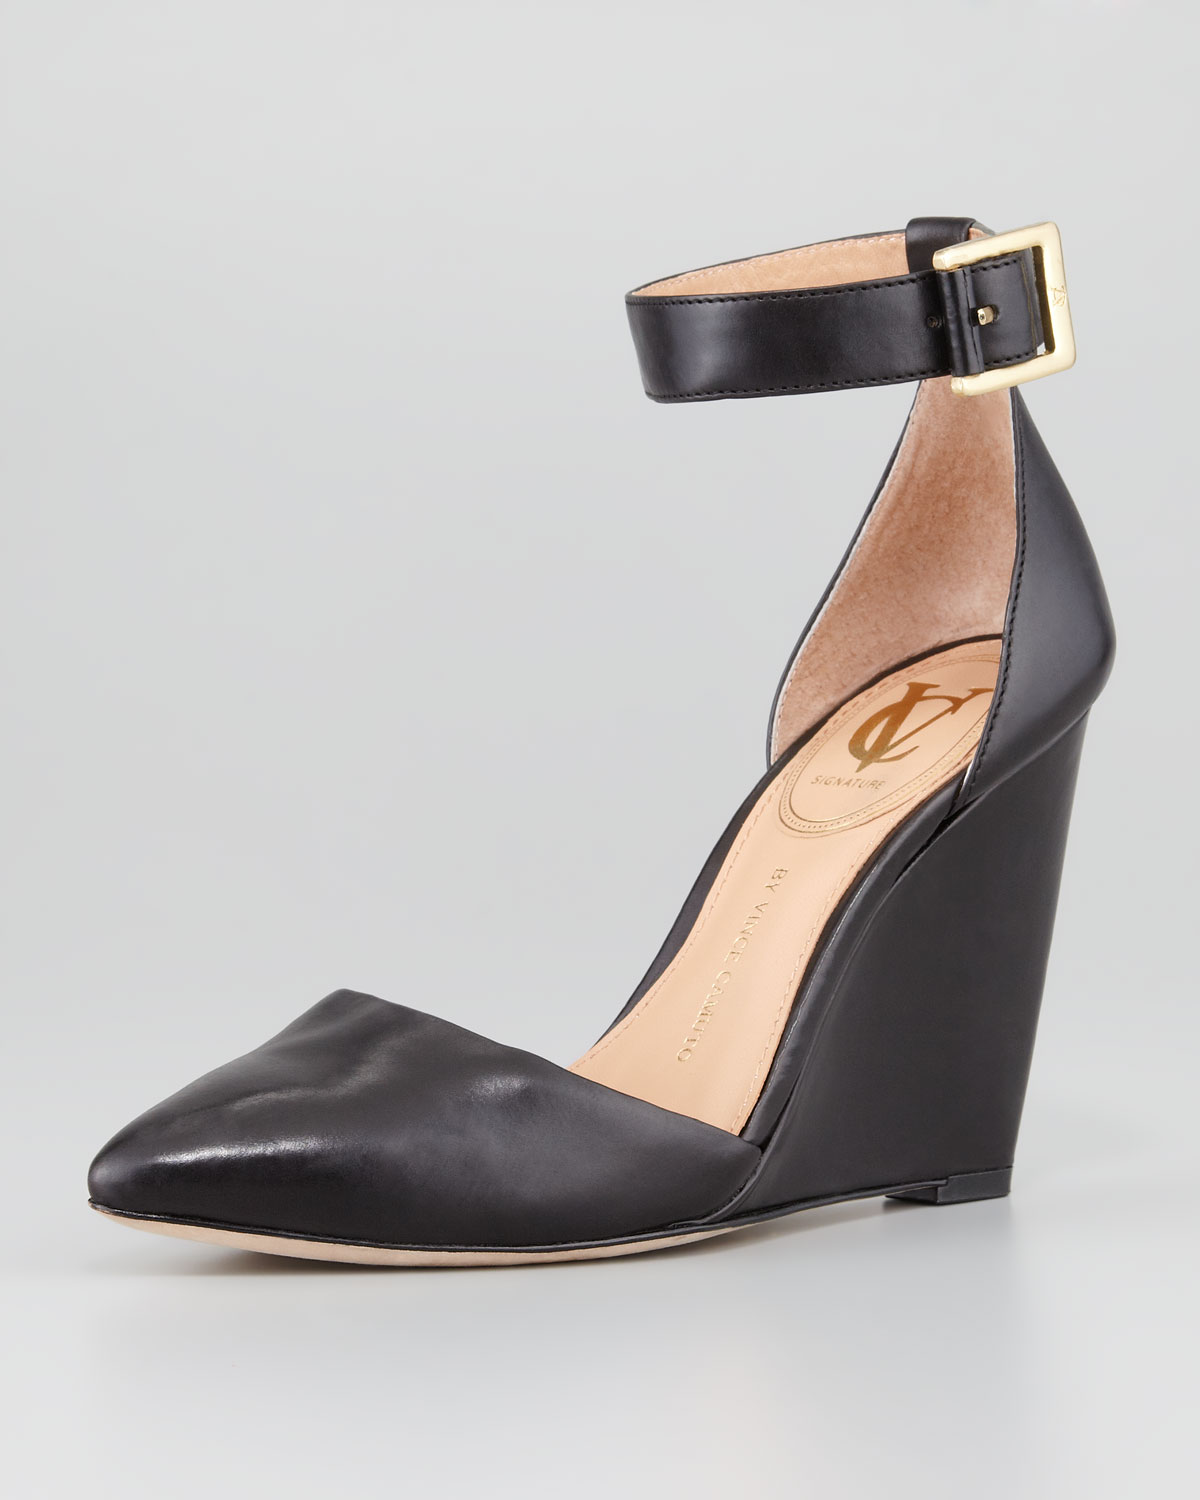 c54aa0fae9f Lyst - Vc Signature Solanna Pointytoe Anklestrap Wedge Black in Black